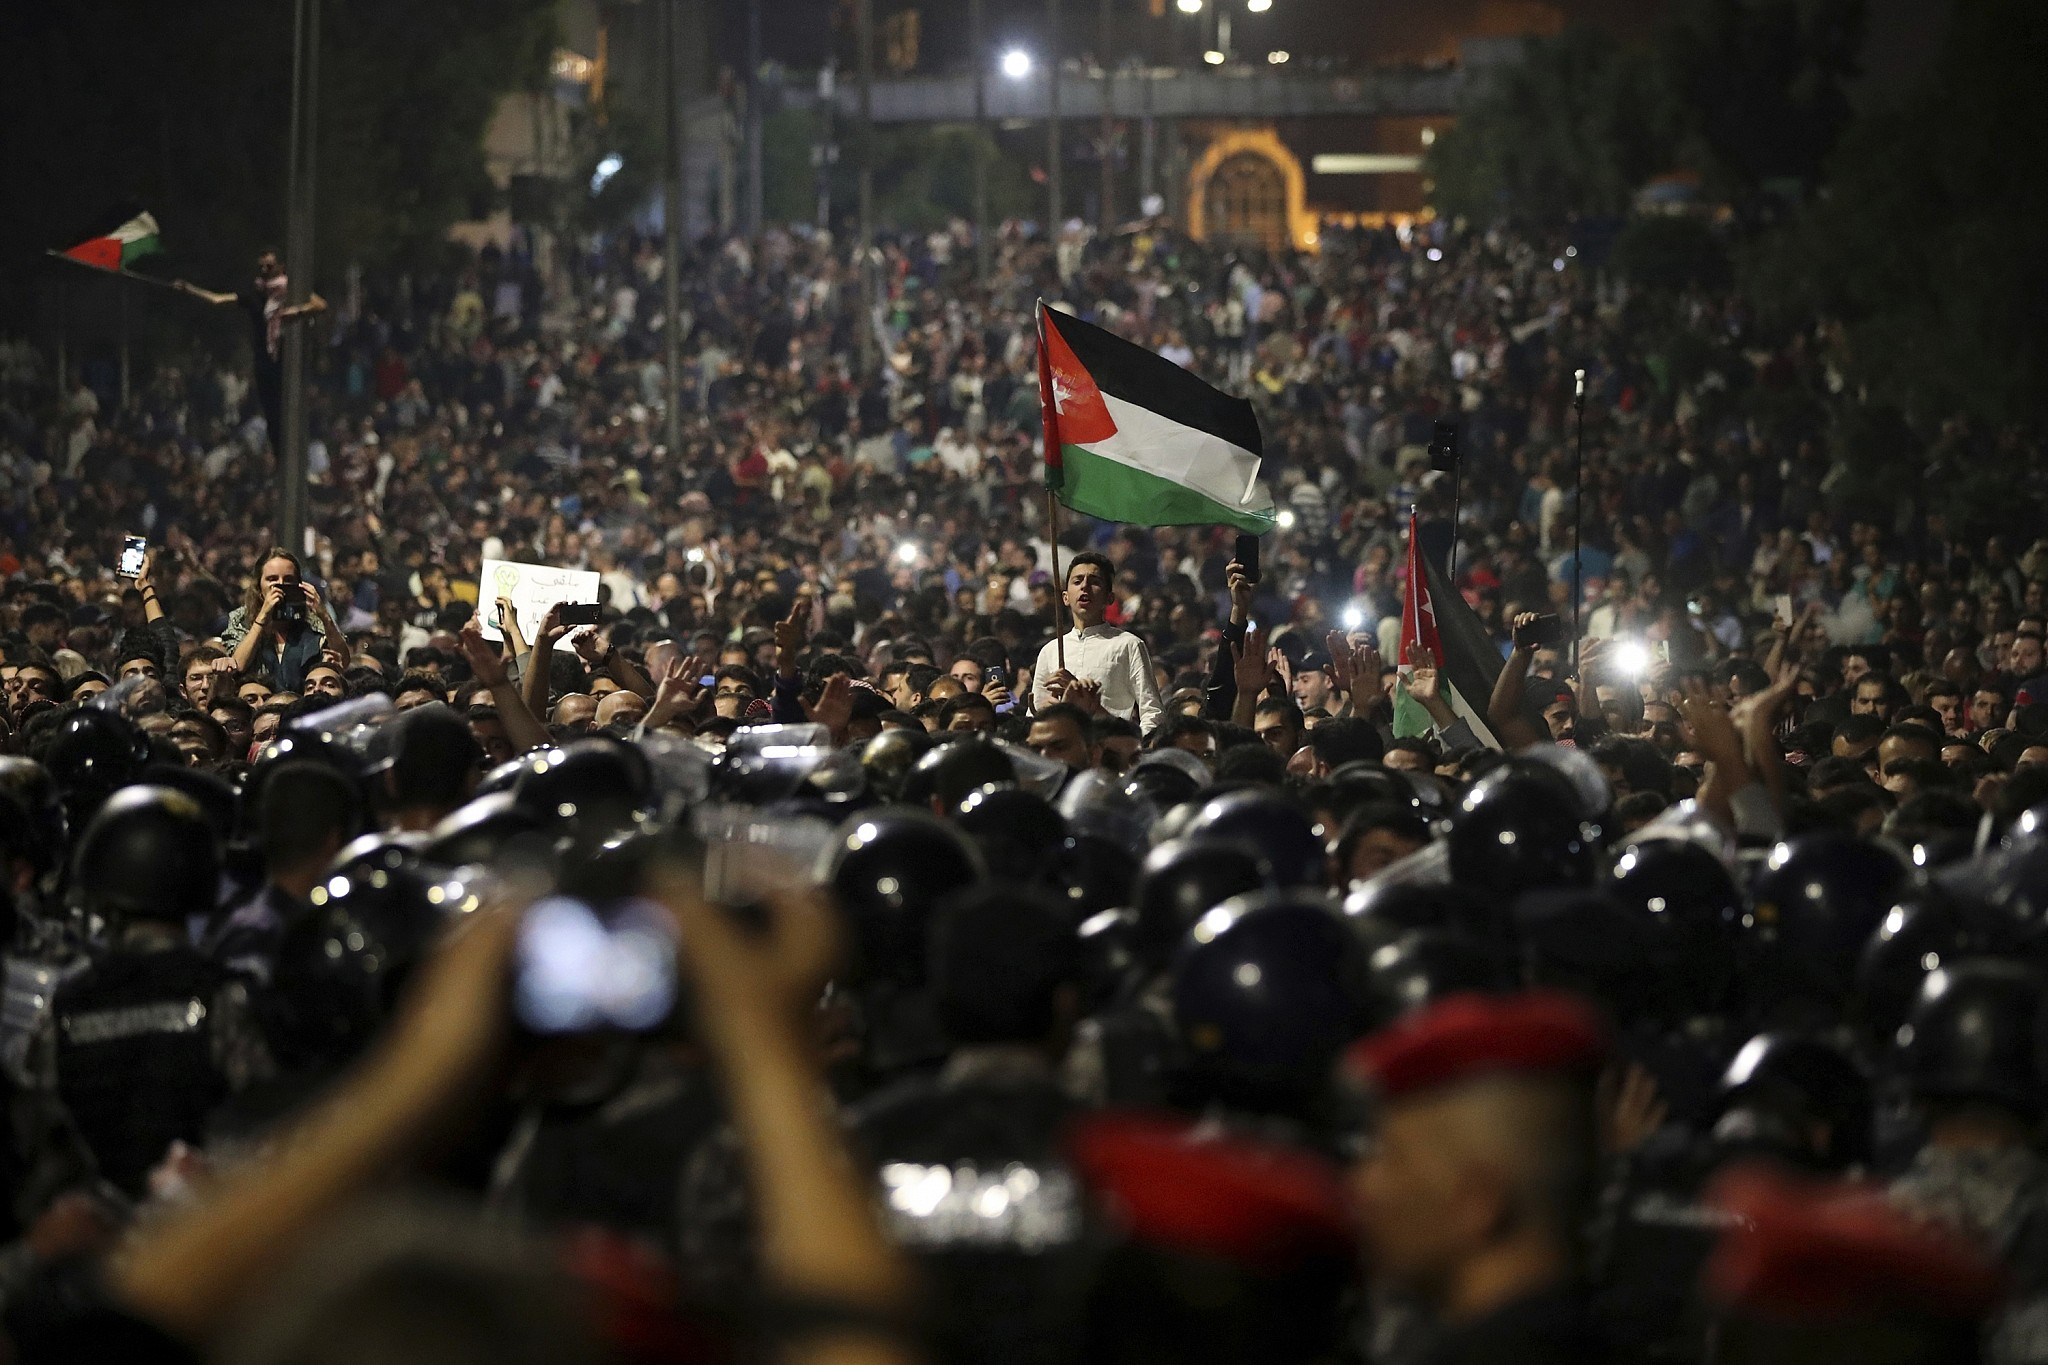 Jordan's PM resigns amid tax-rise protests